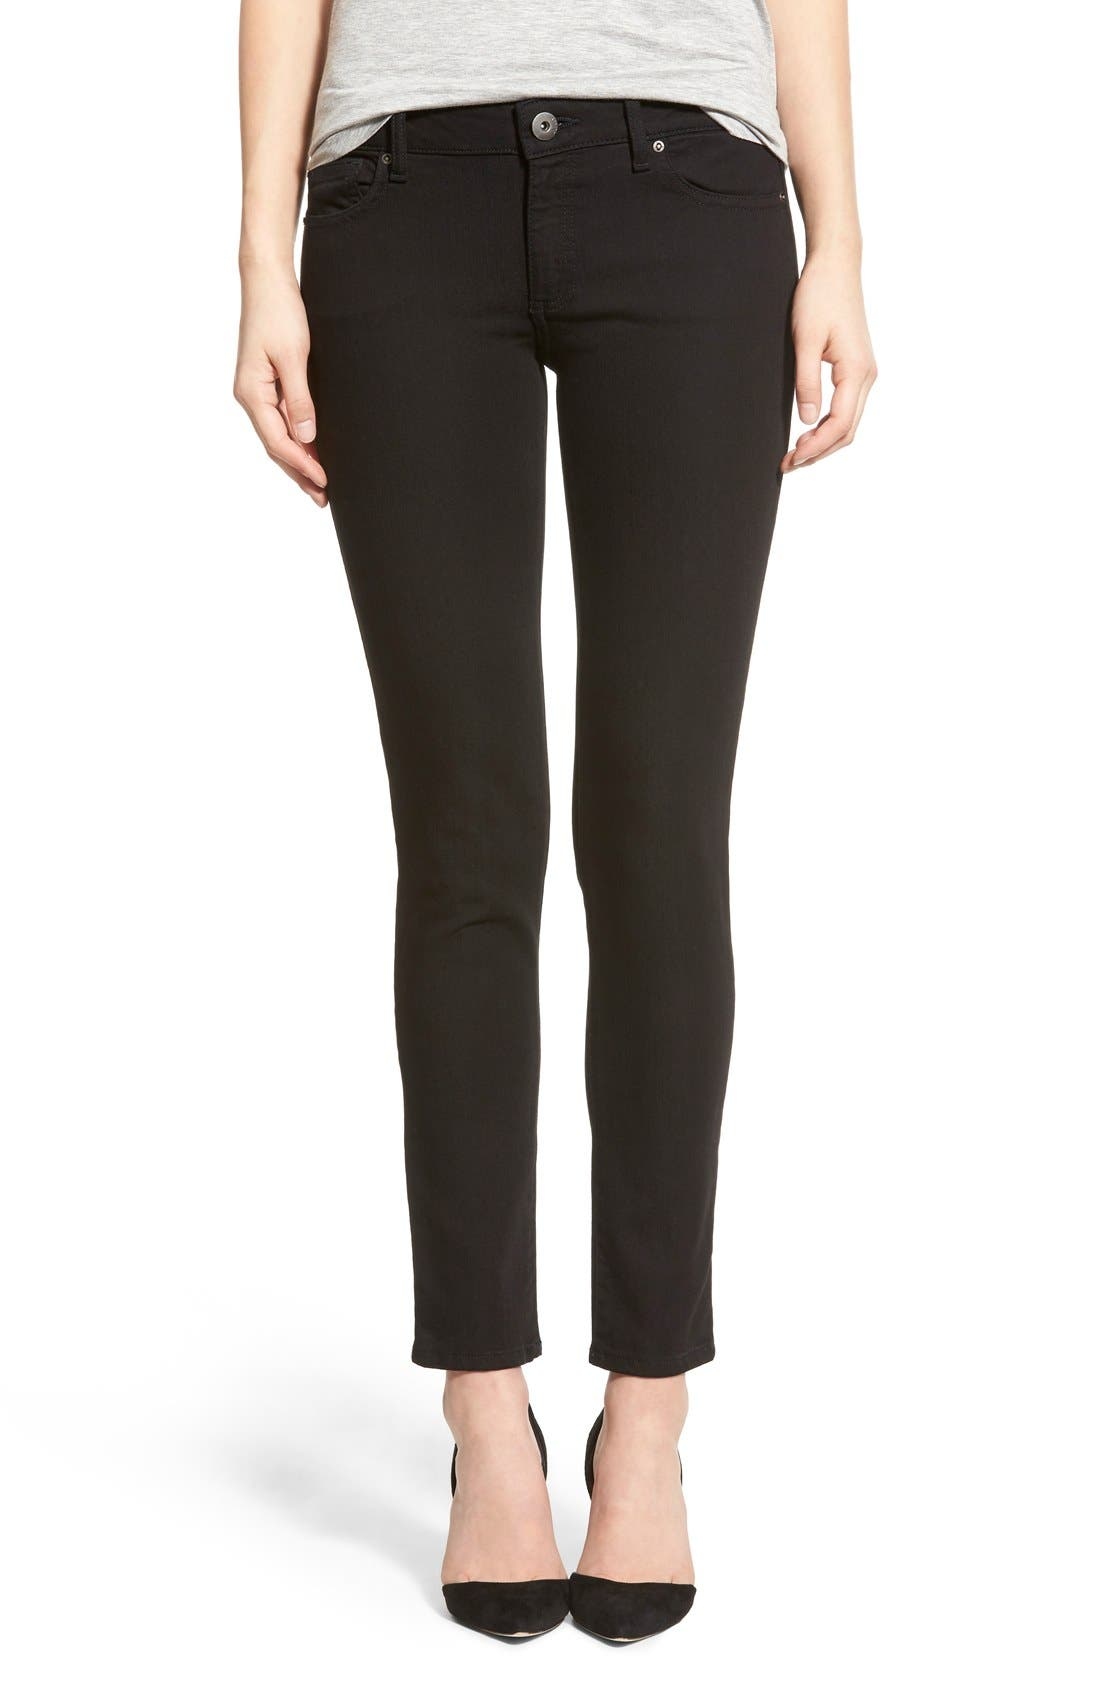 Main Image - DL1961 'Emma' Power Legging Jeans (Riker)